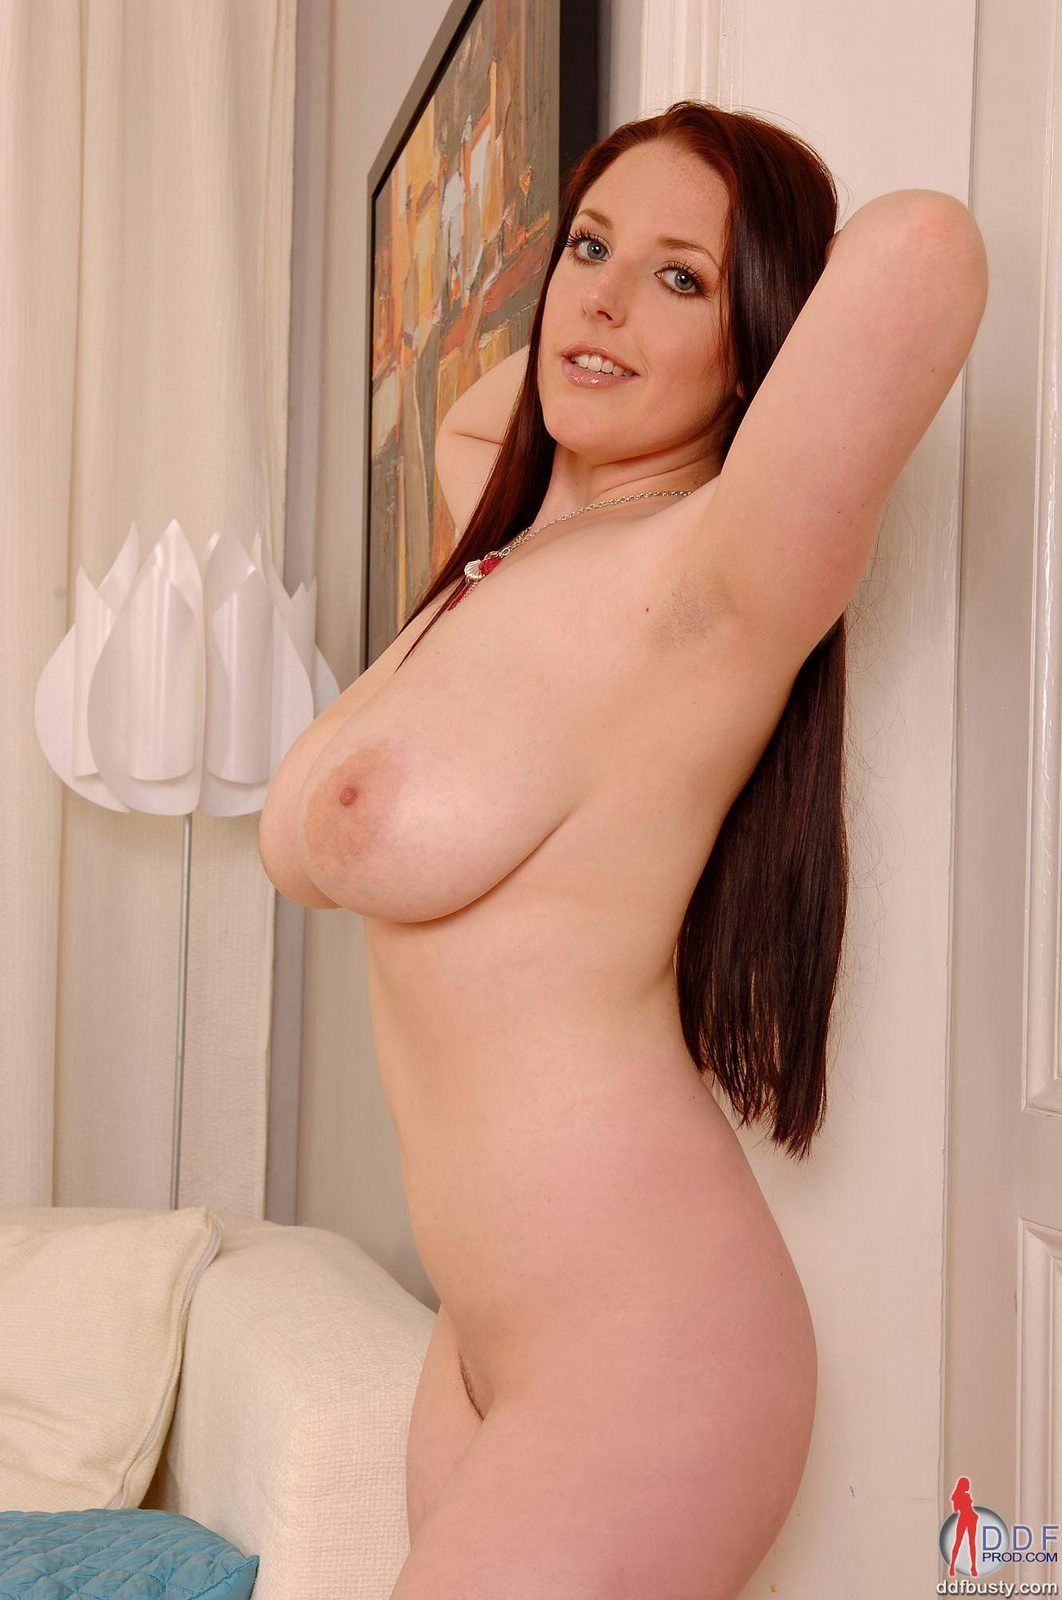 redhead angela white posing for your pleasure models angela white